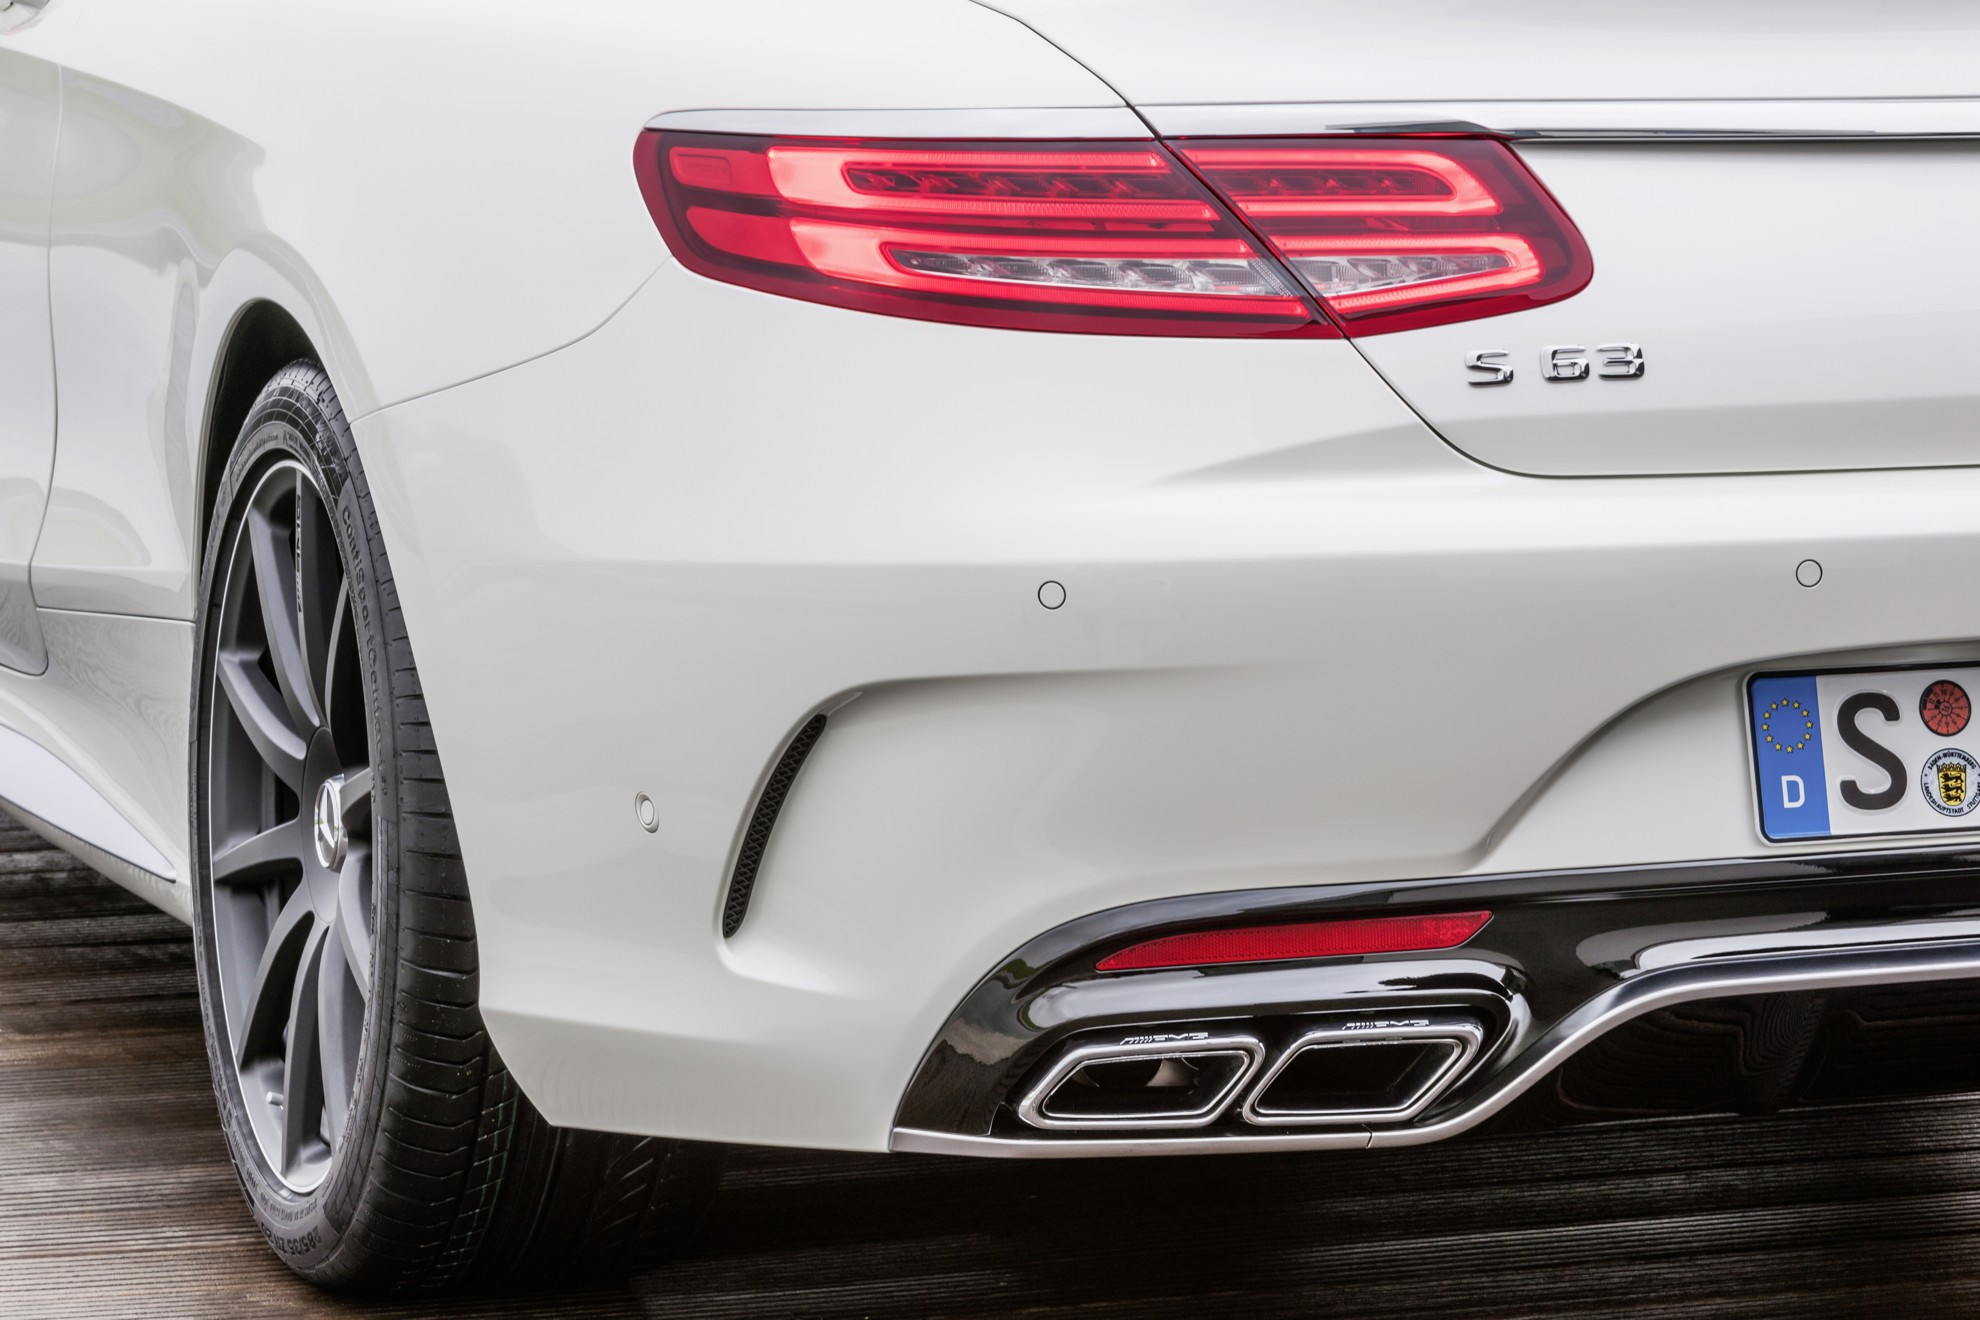 Mercedes-Benz_S_63_AMG_Coupe_Exhaust